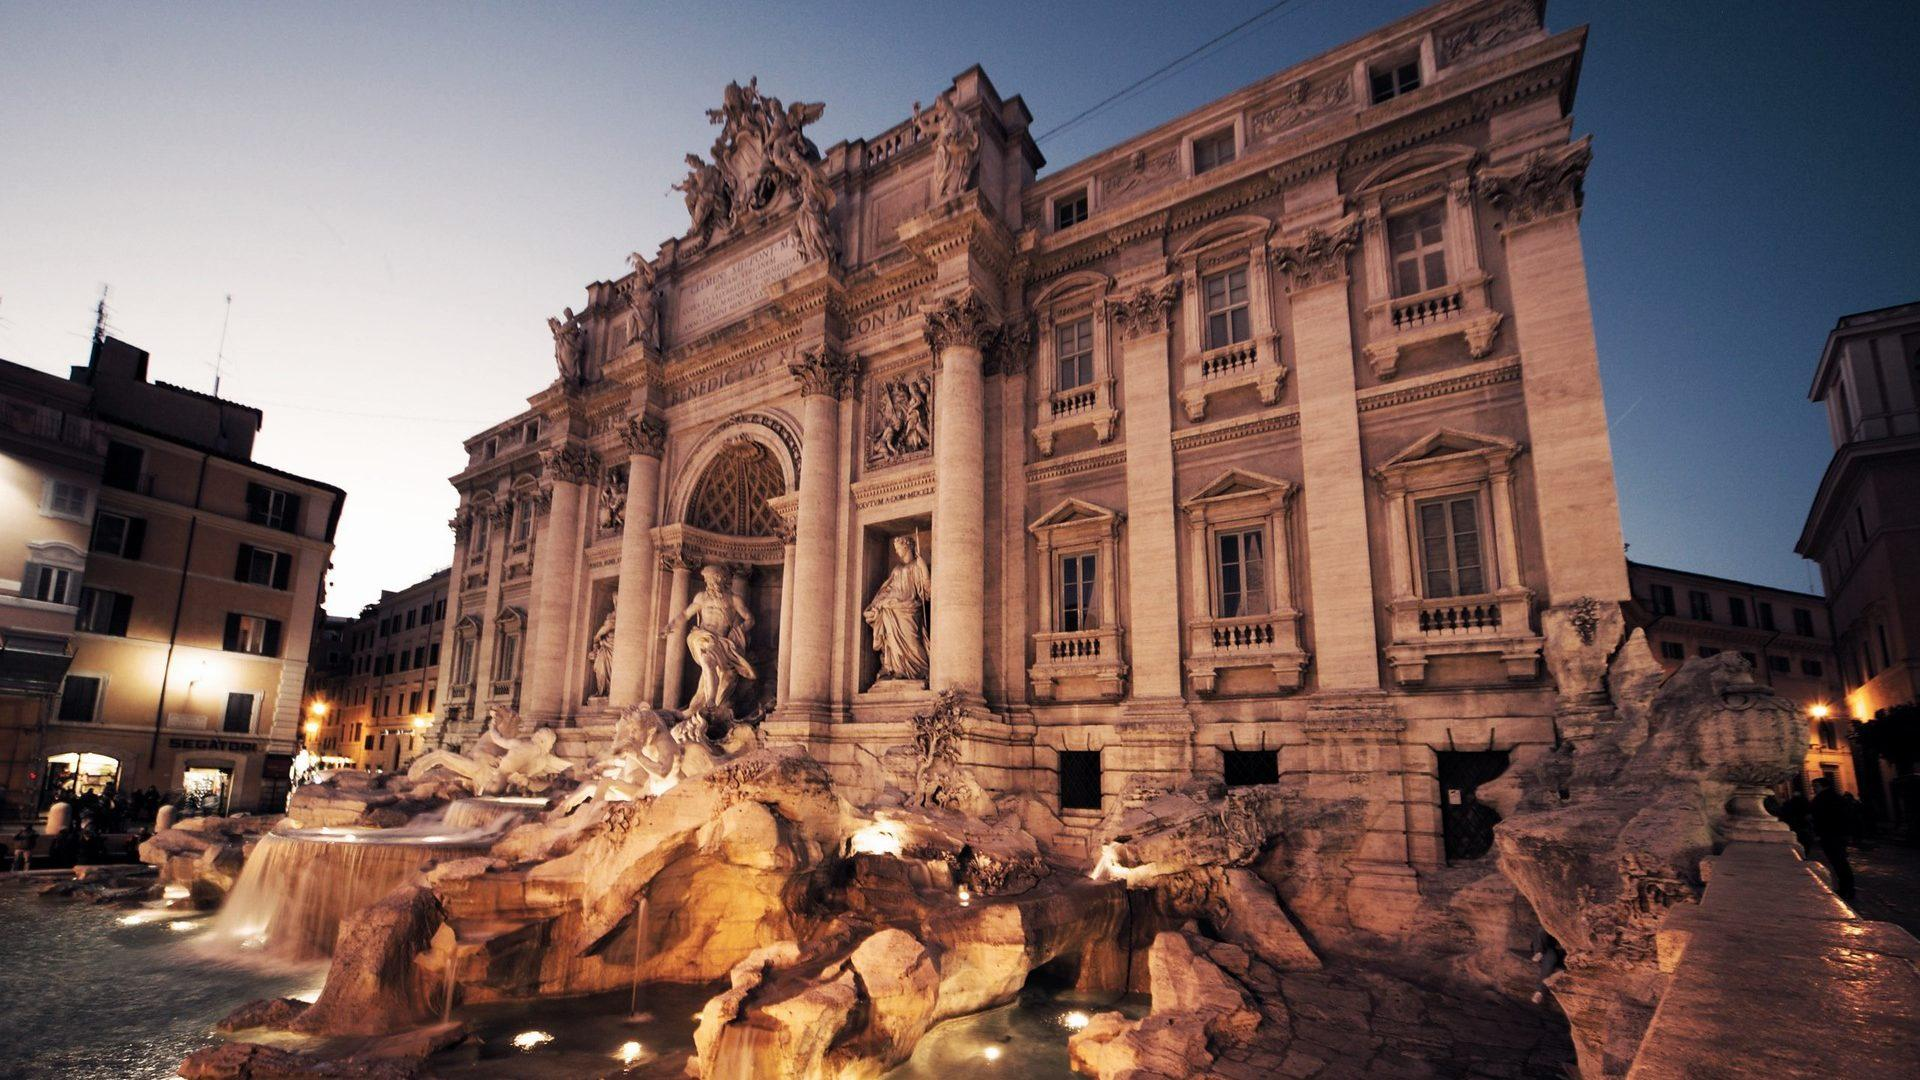 Best Angle Wallpapers Of The Trevi Fountain In Rome Italy